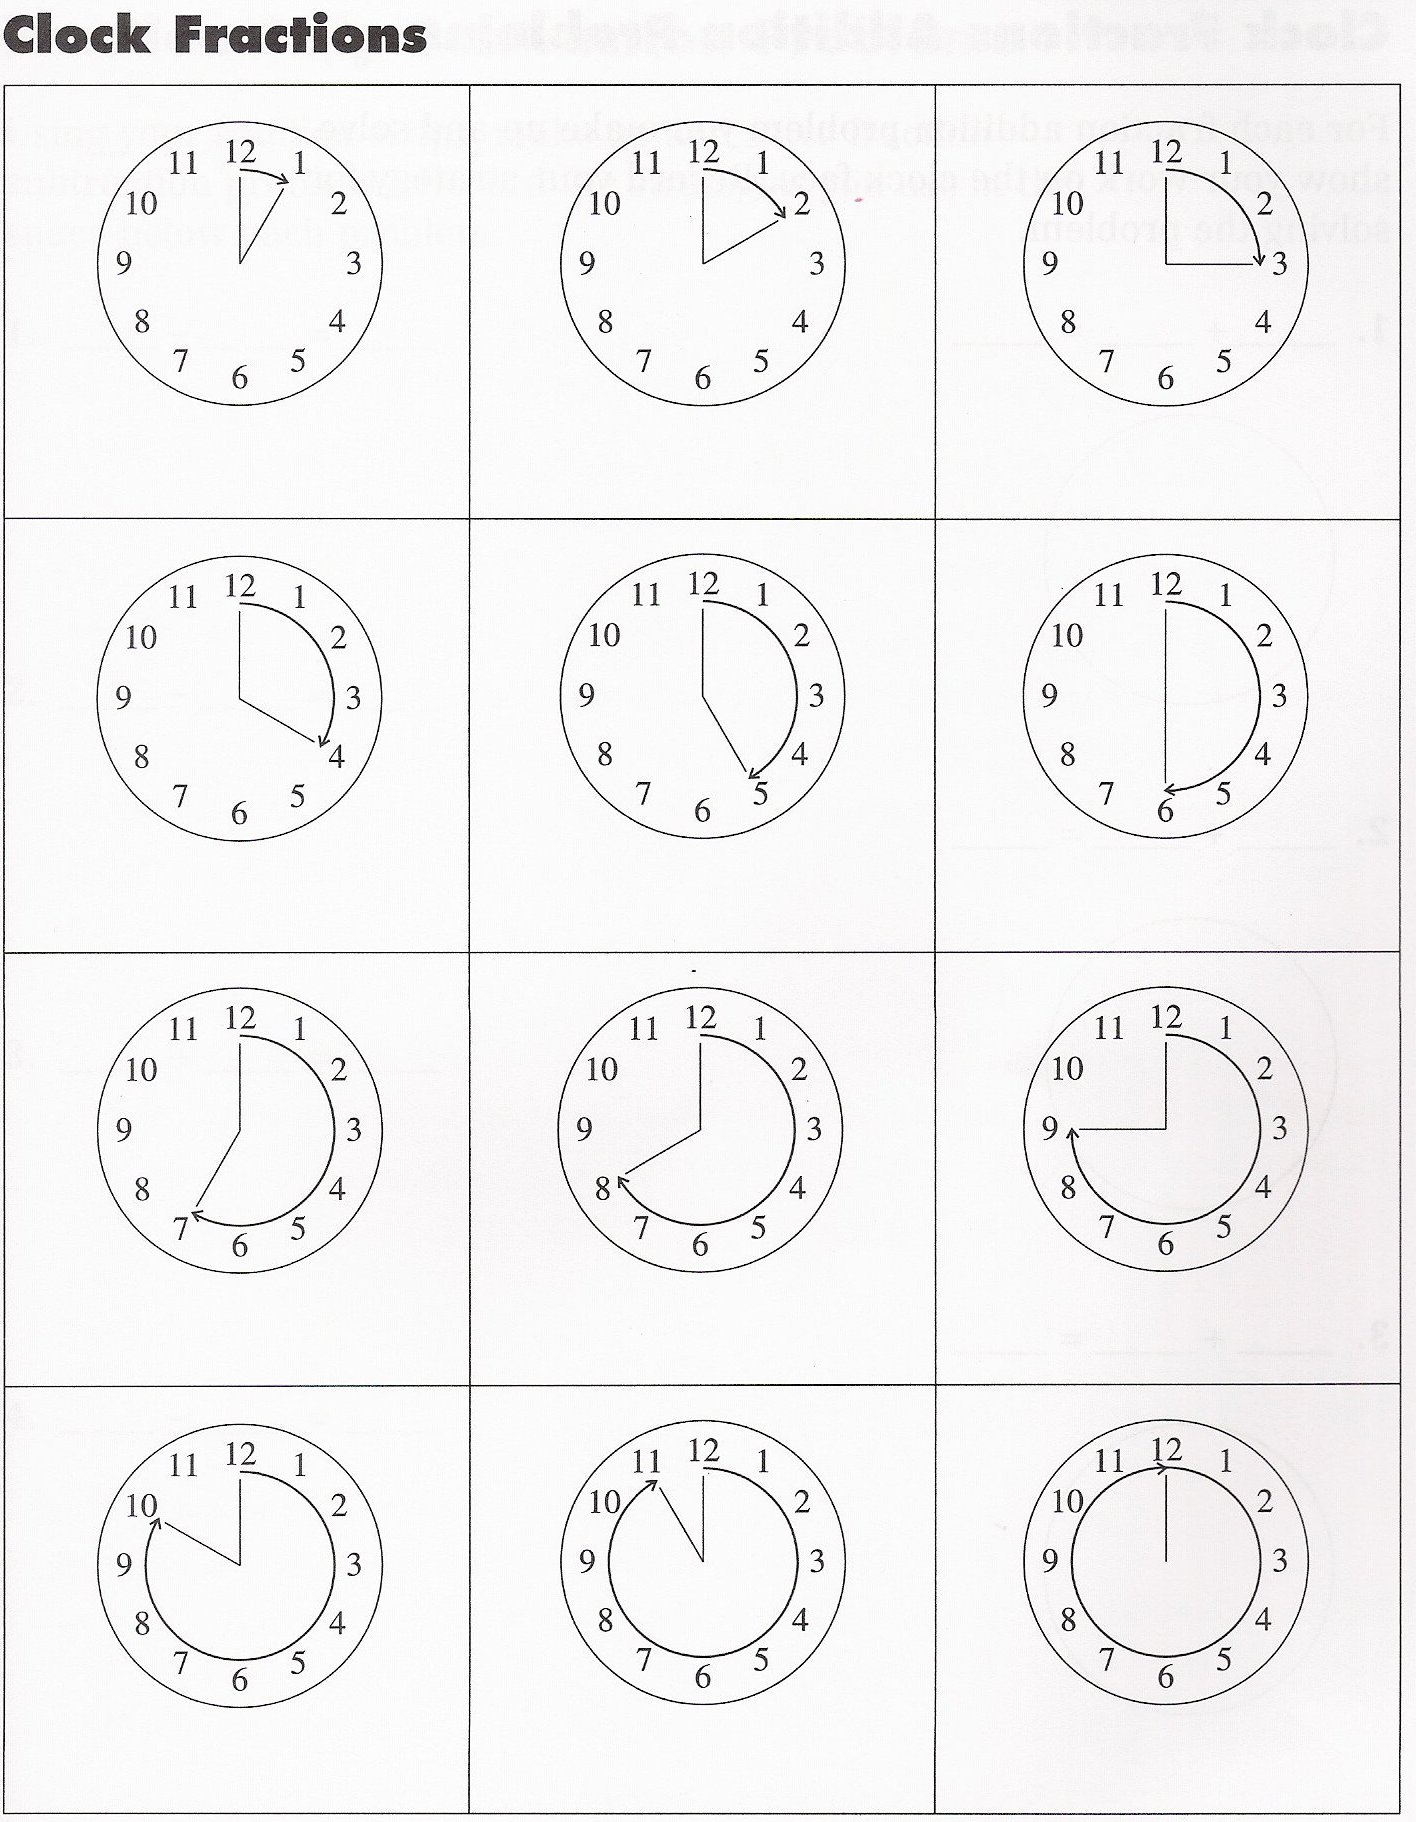 Fractions of an Hour Worksheet - Simple: EnchantedLearning.com